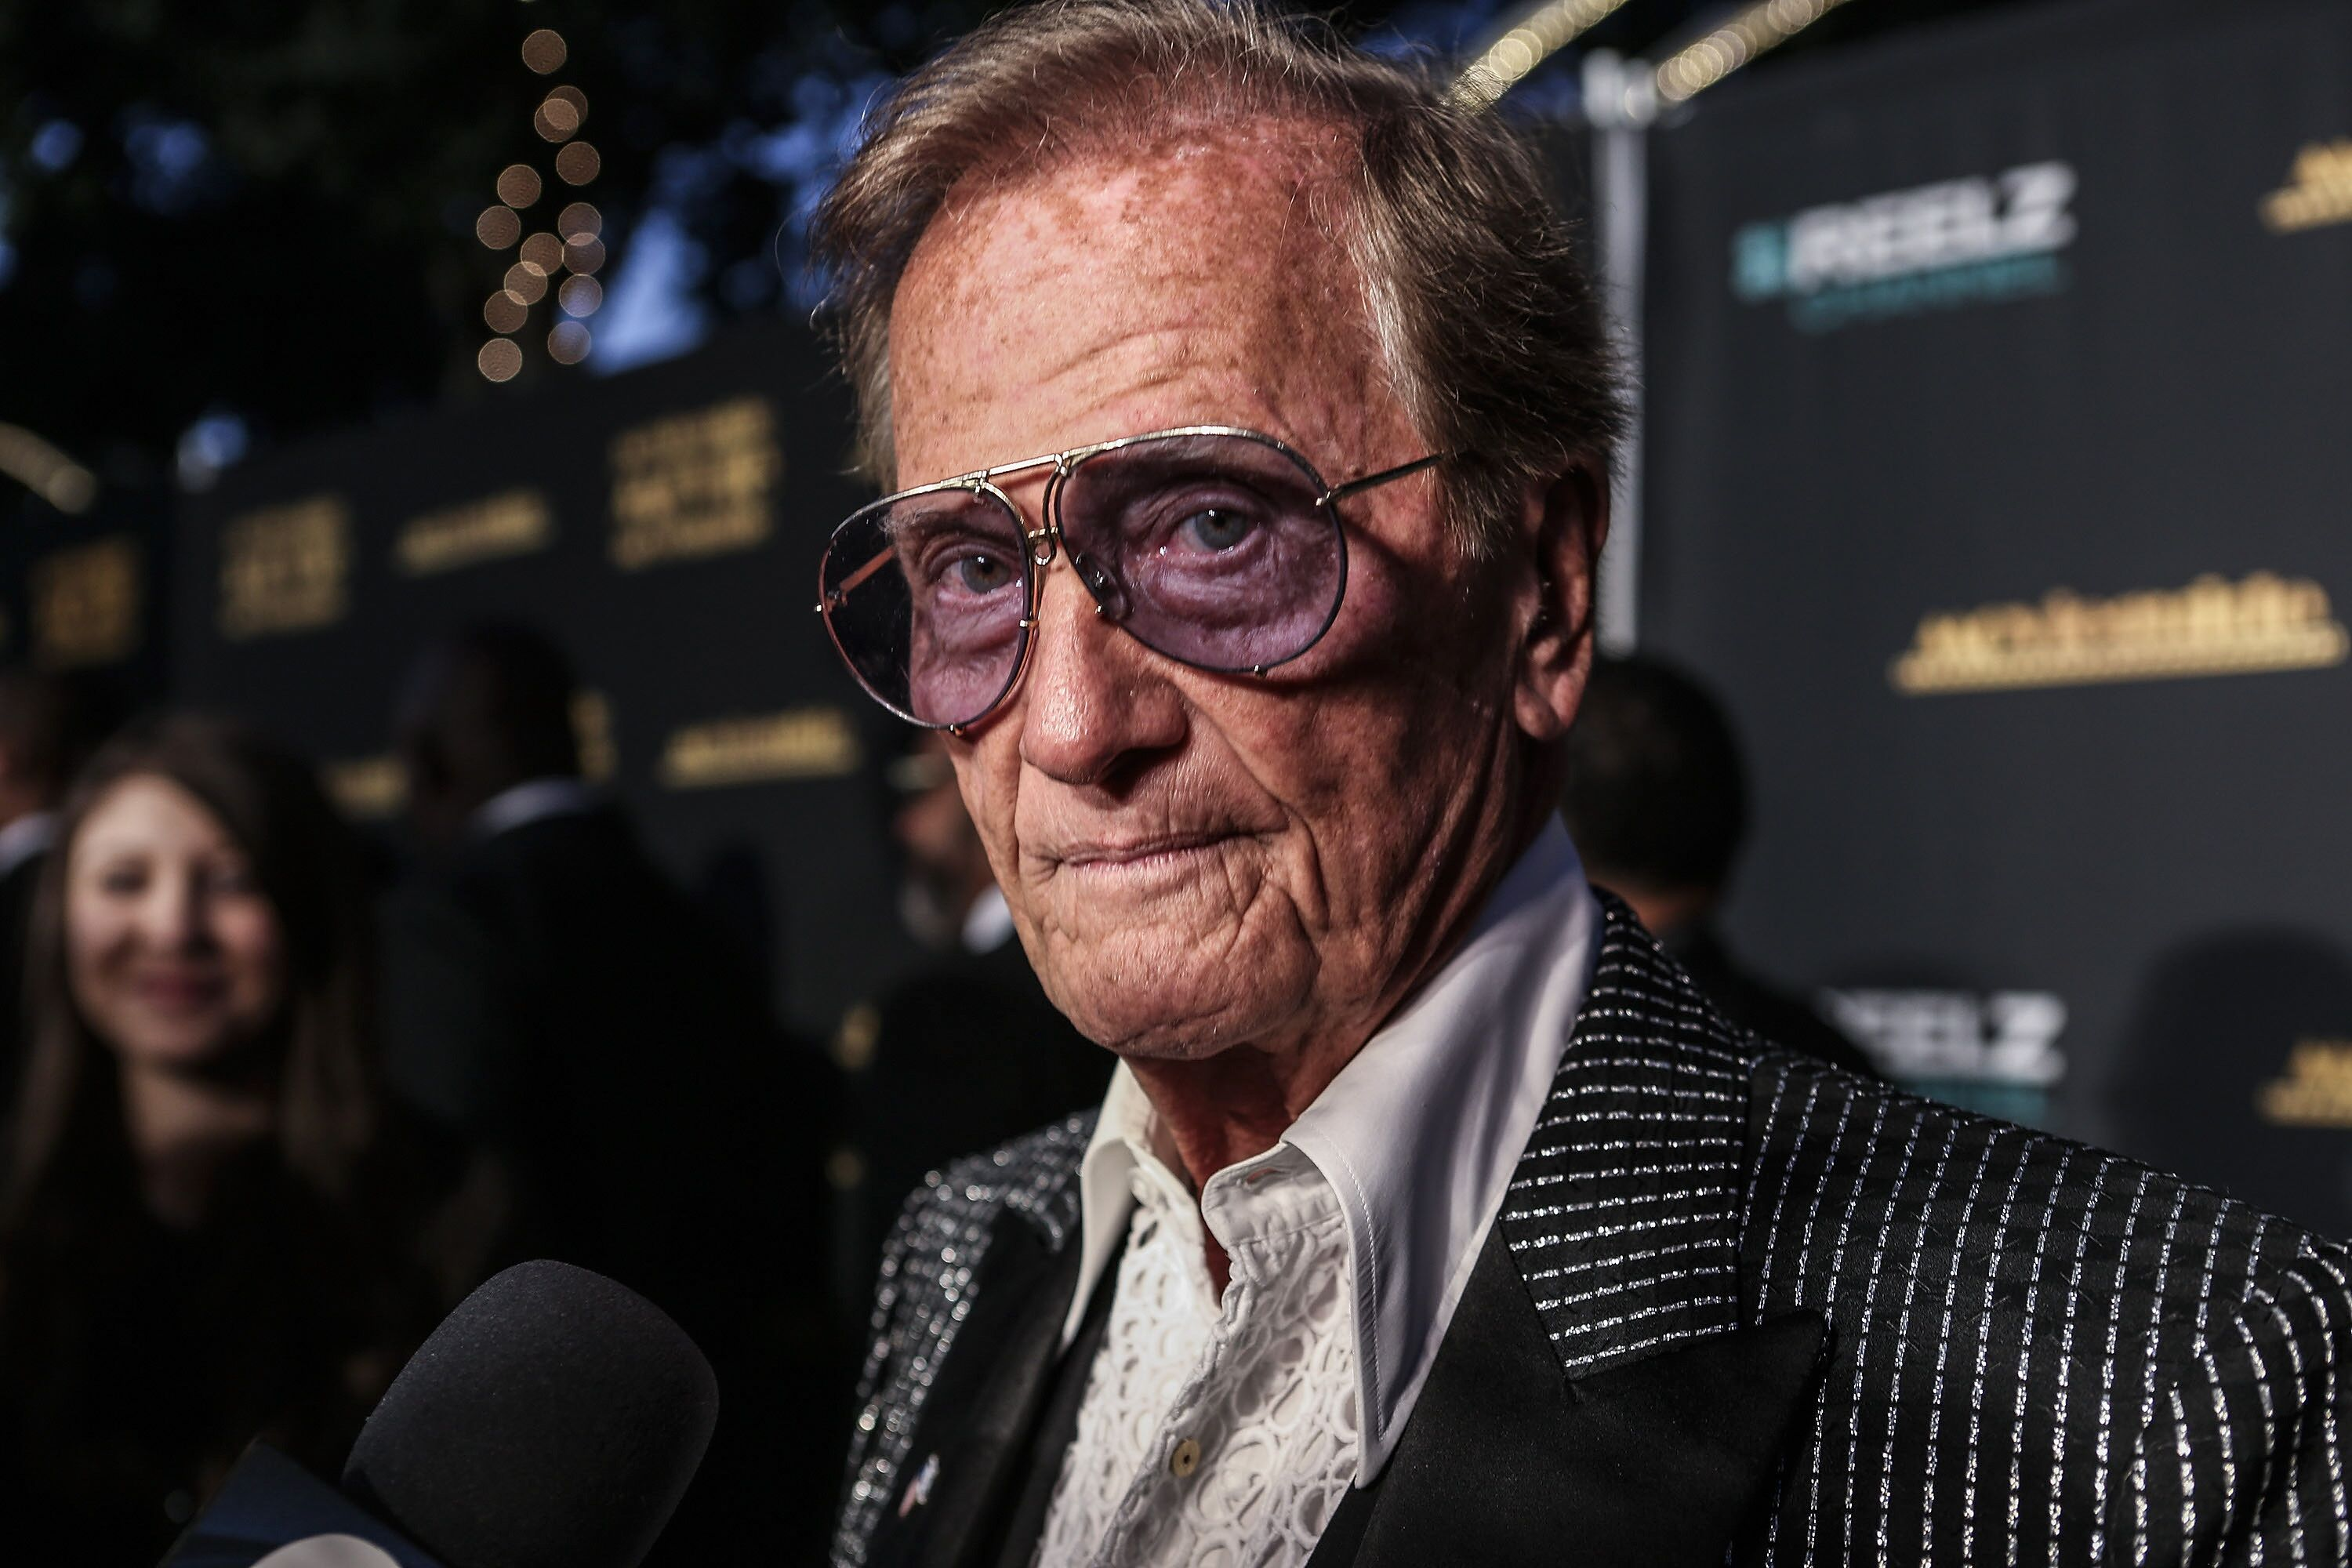 Pat Boone at the 23rd Annual MovieGuide Awards in Universal City, California in 2015   Source: Getty Images